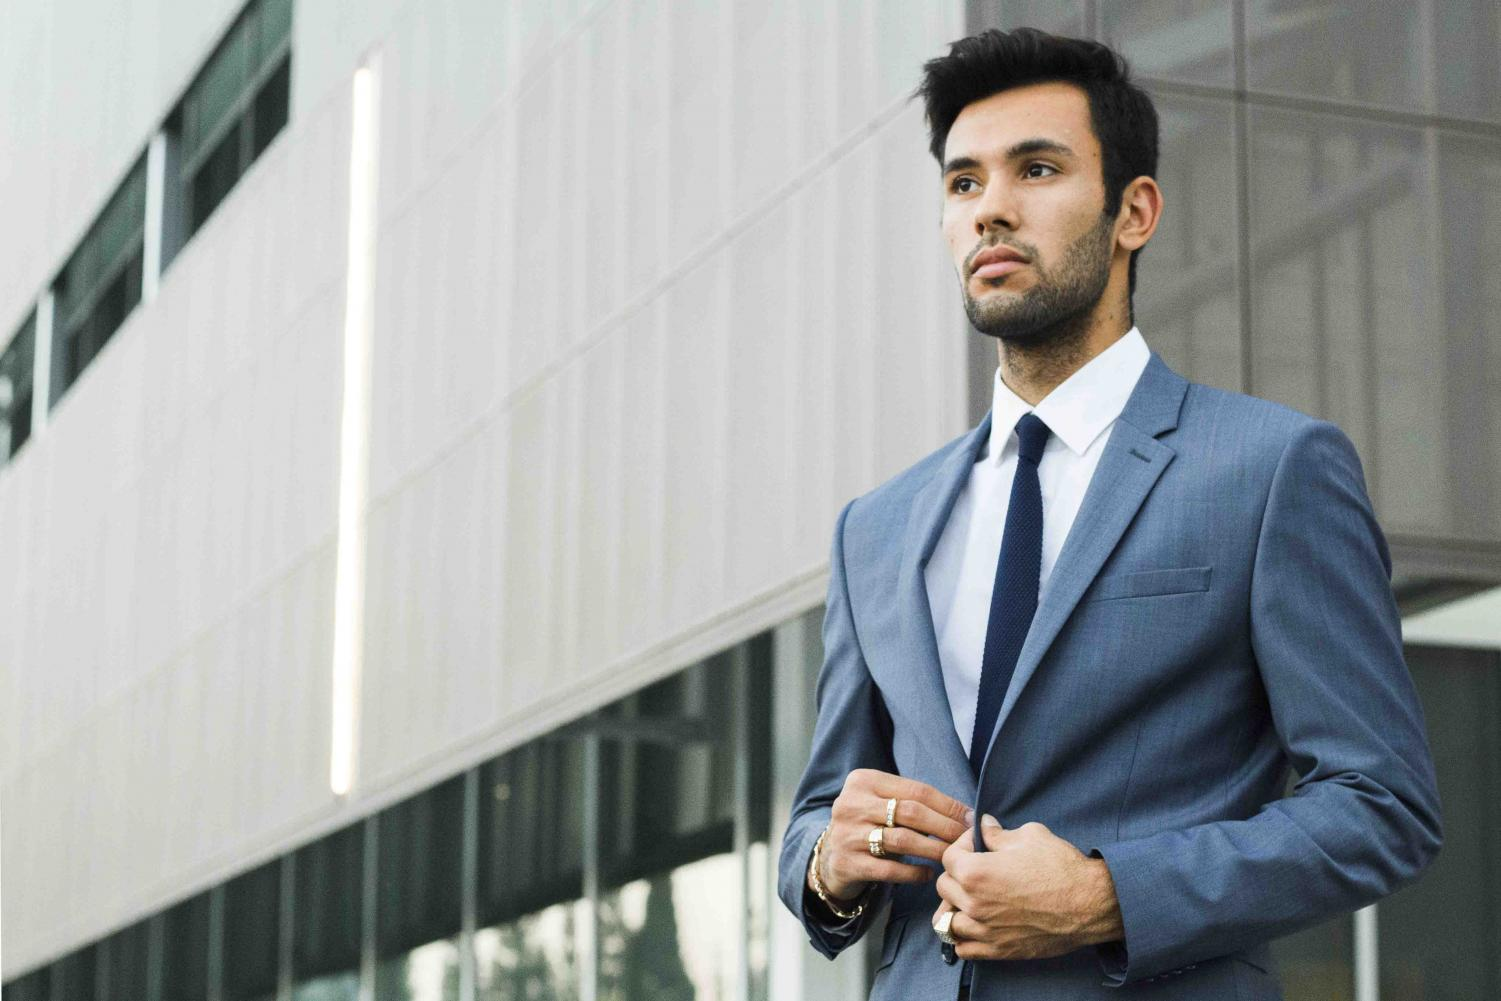 Johan Lozano poses in a full suit and tie. Dressing professionally helps to create a great first impression on potential employers. Clothing is not from JCPenney.